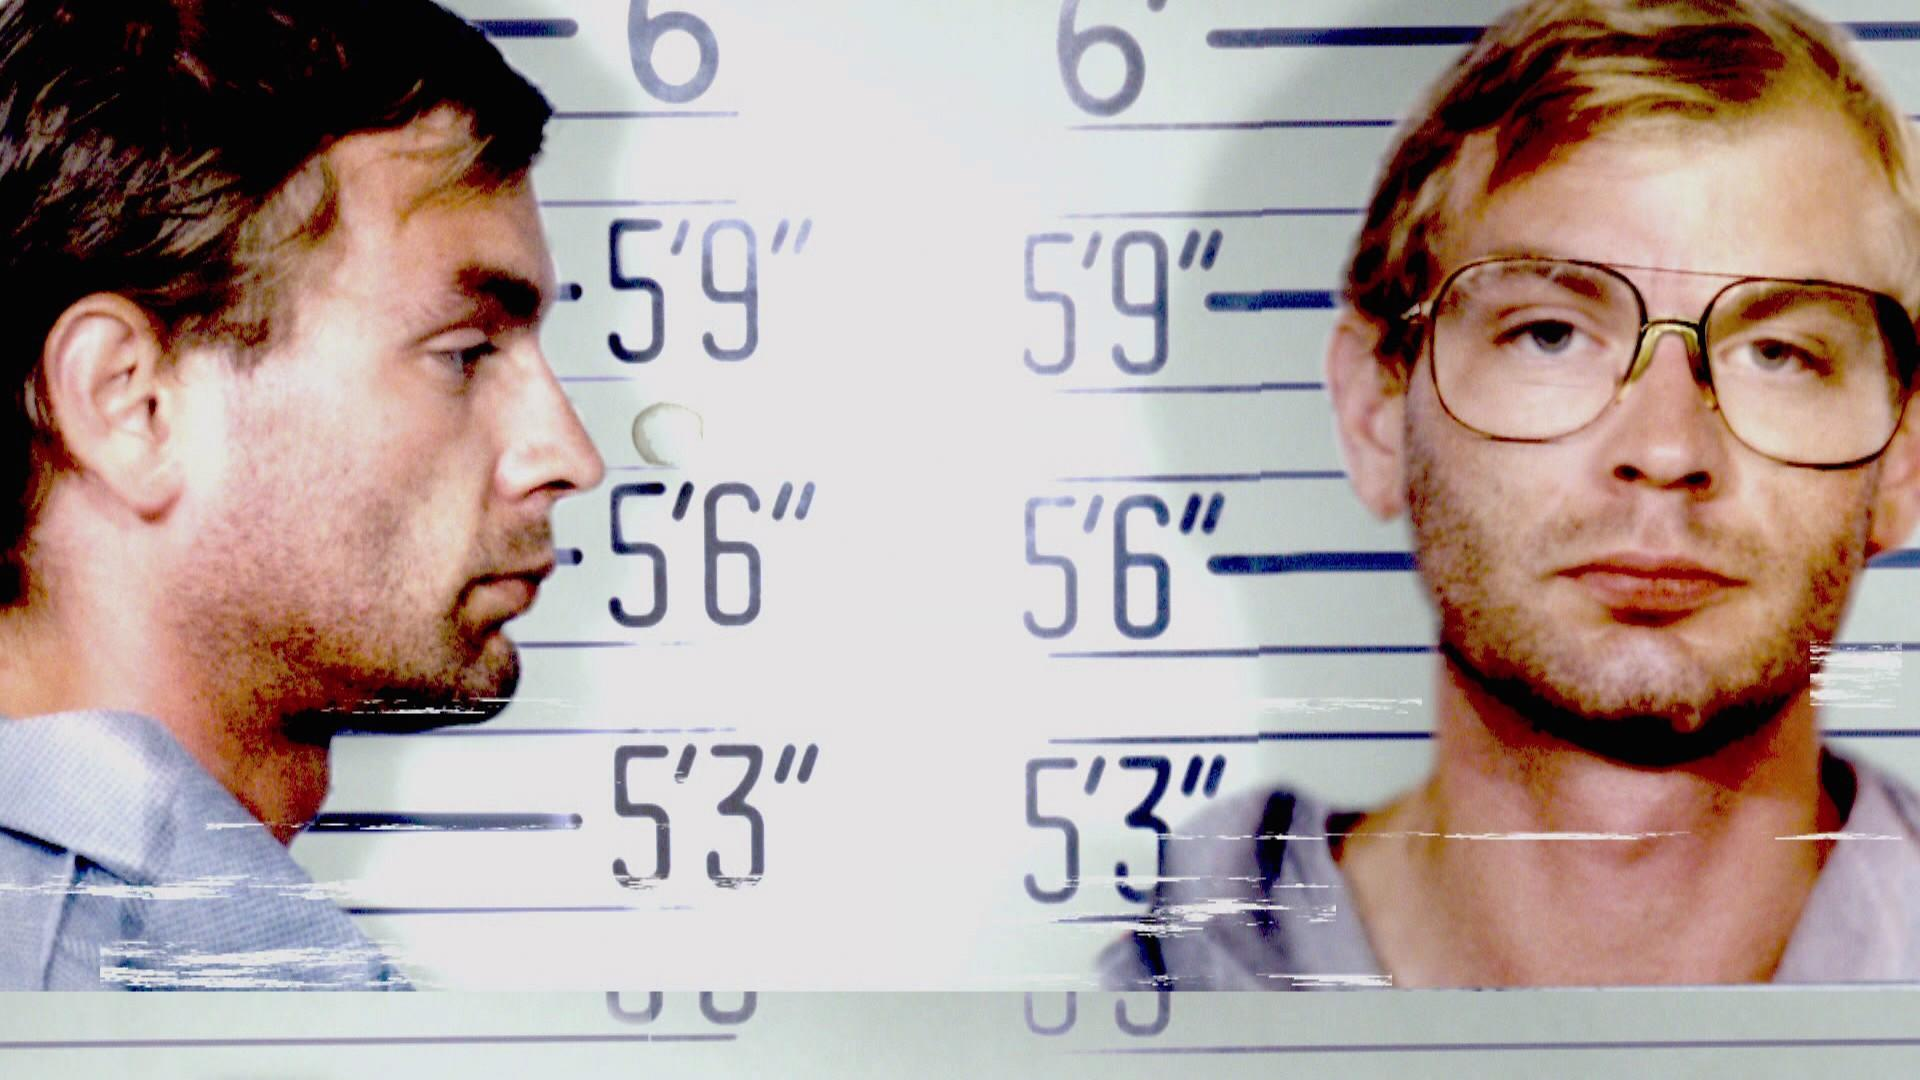 Jeffrey Dahmer - A Serial Killer speaks